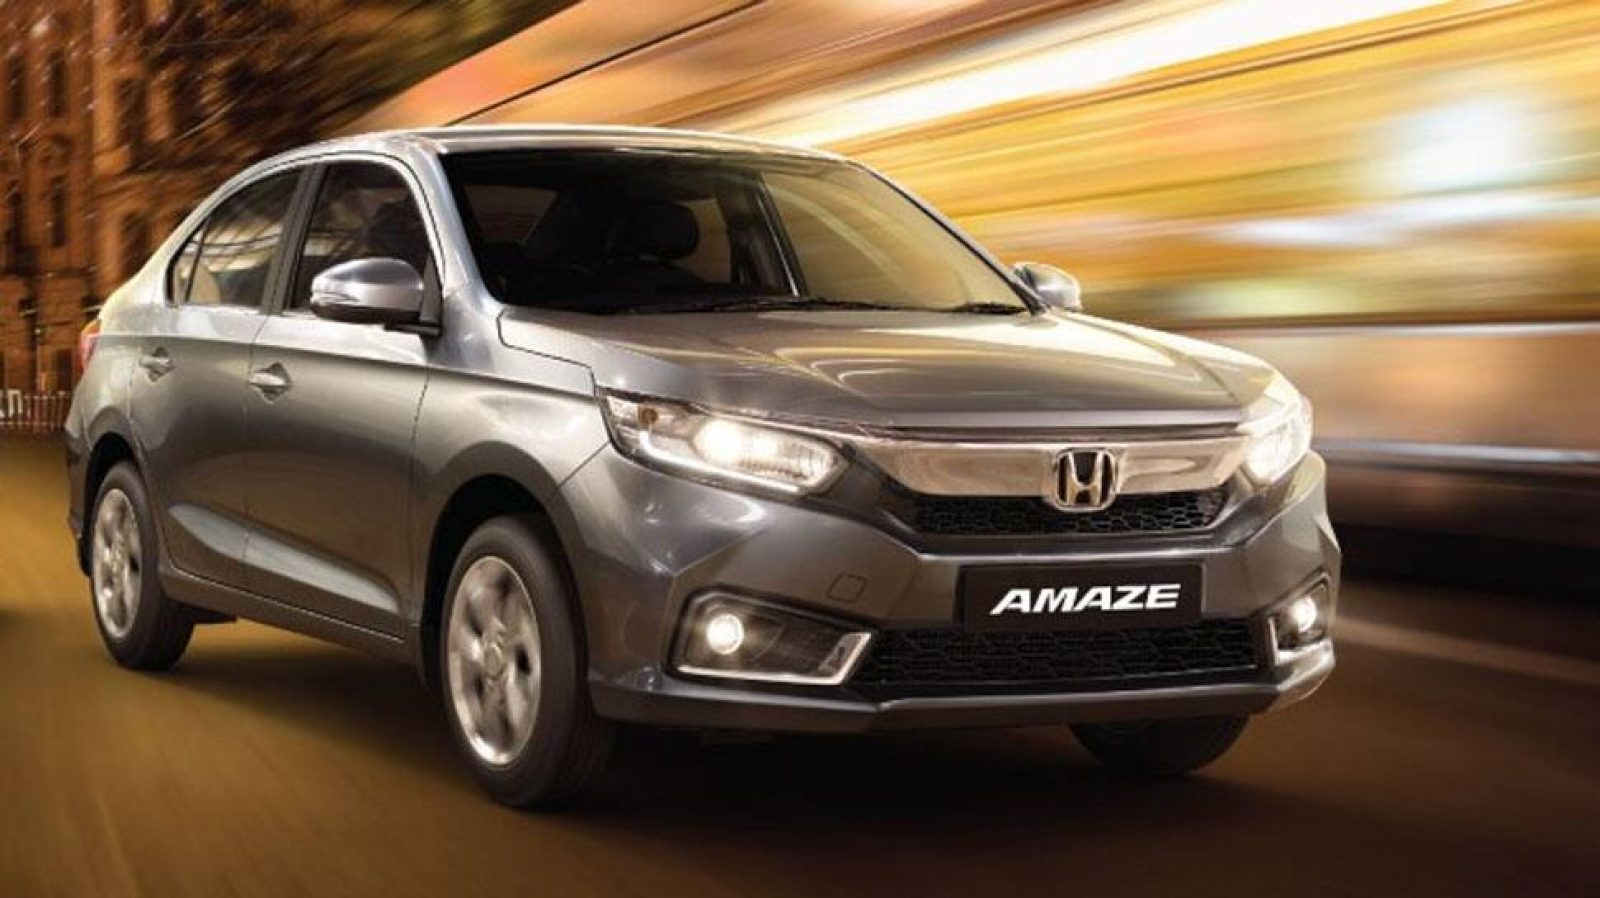 Honda Amaze exclusive edition launched in India –Check price, specs and more